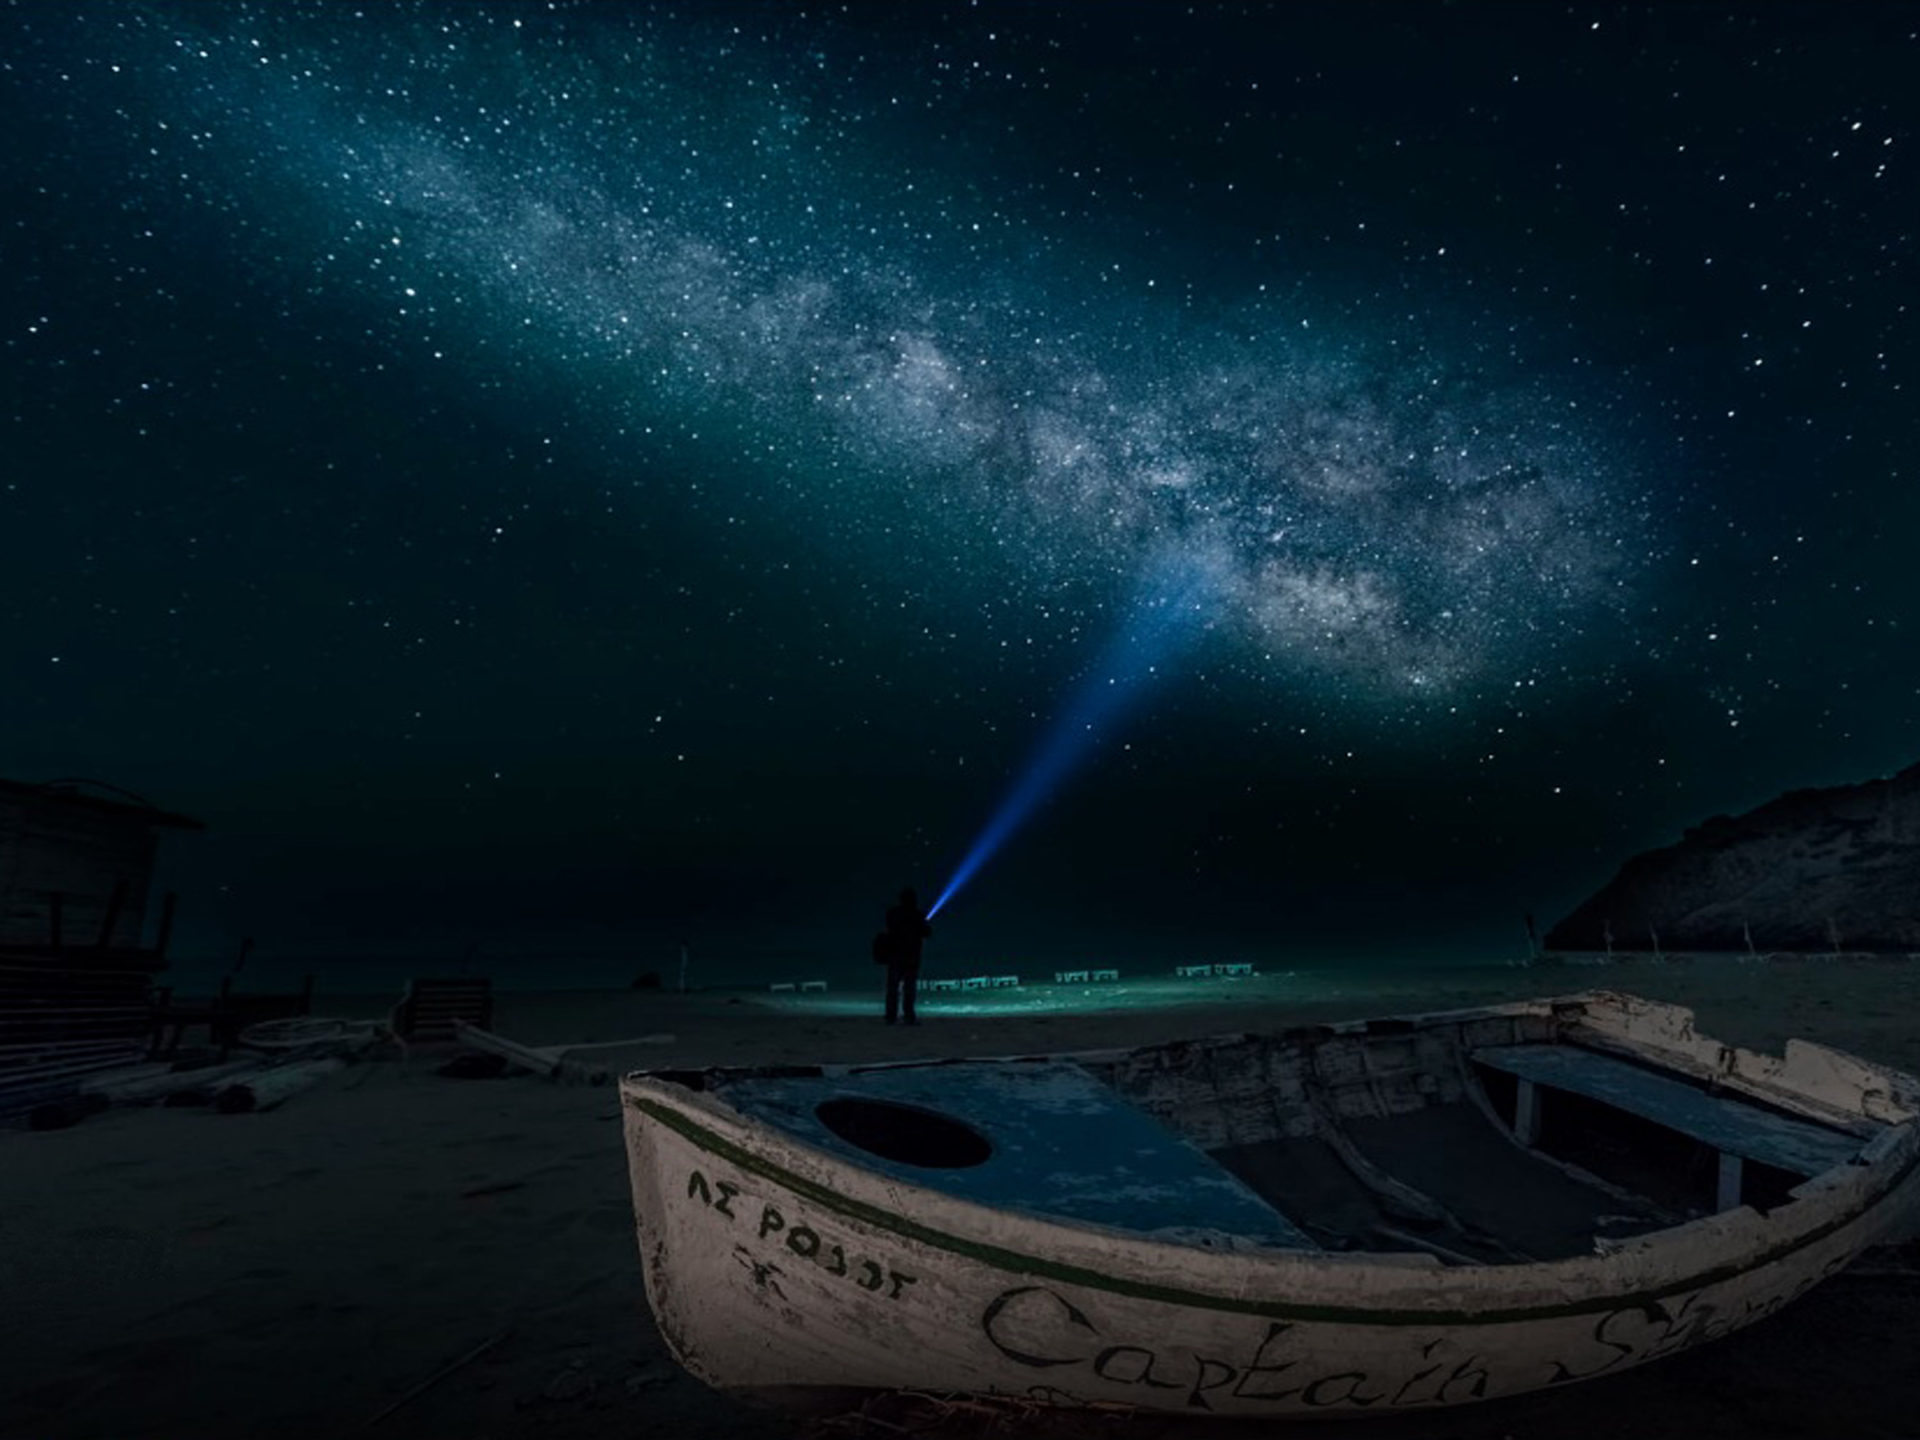 Beautiful Cars Wallpapers Free Download Sandy Beach At Night Time Boat Sky Star Digital Art